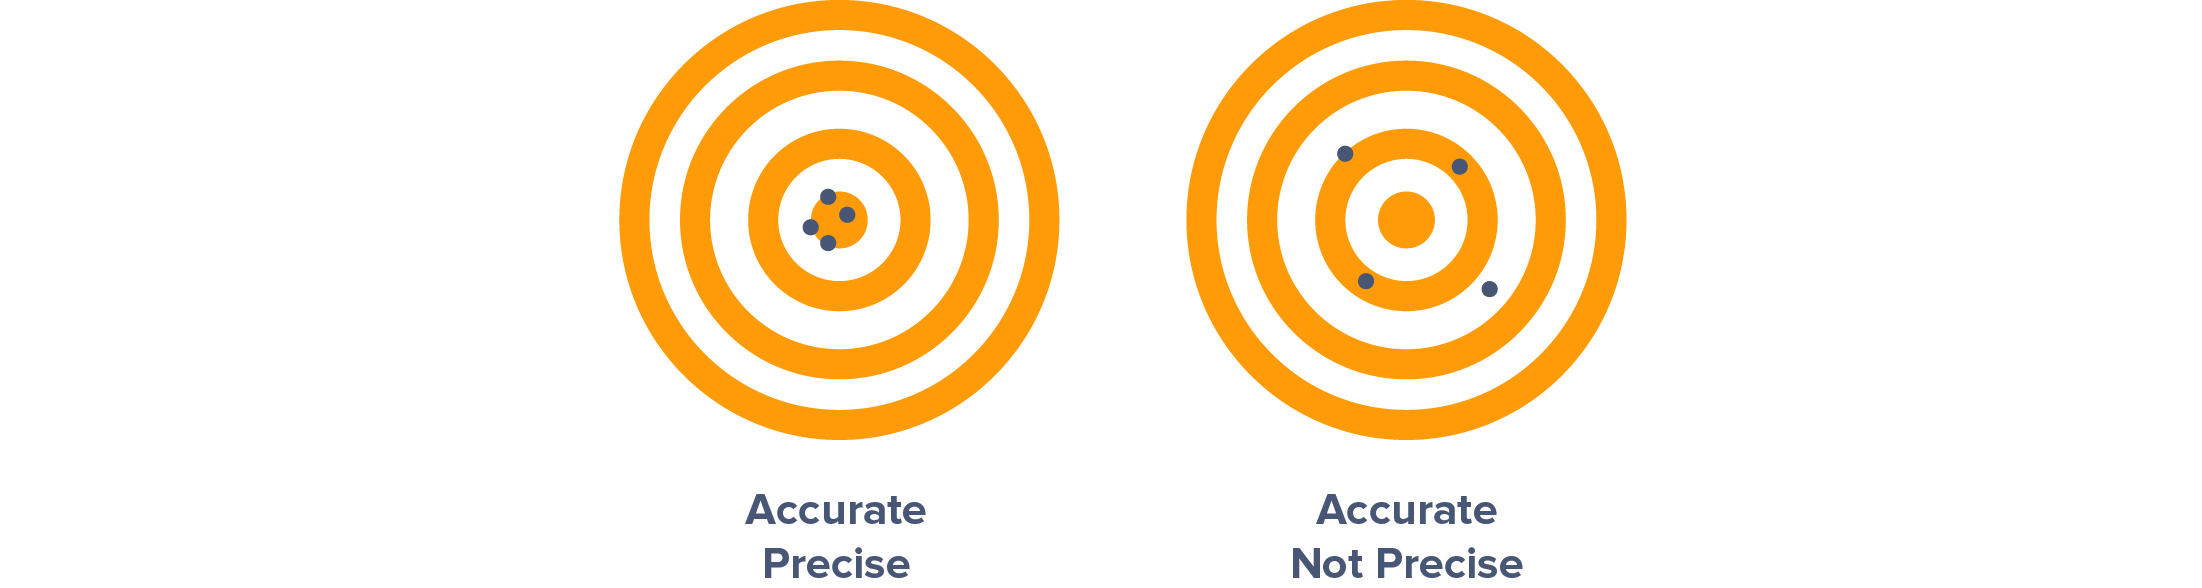 Two targets demonstrate the difference between accuracy and precision.